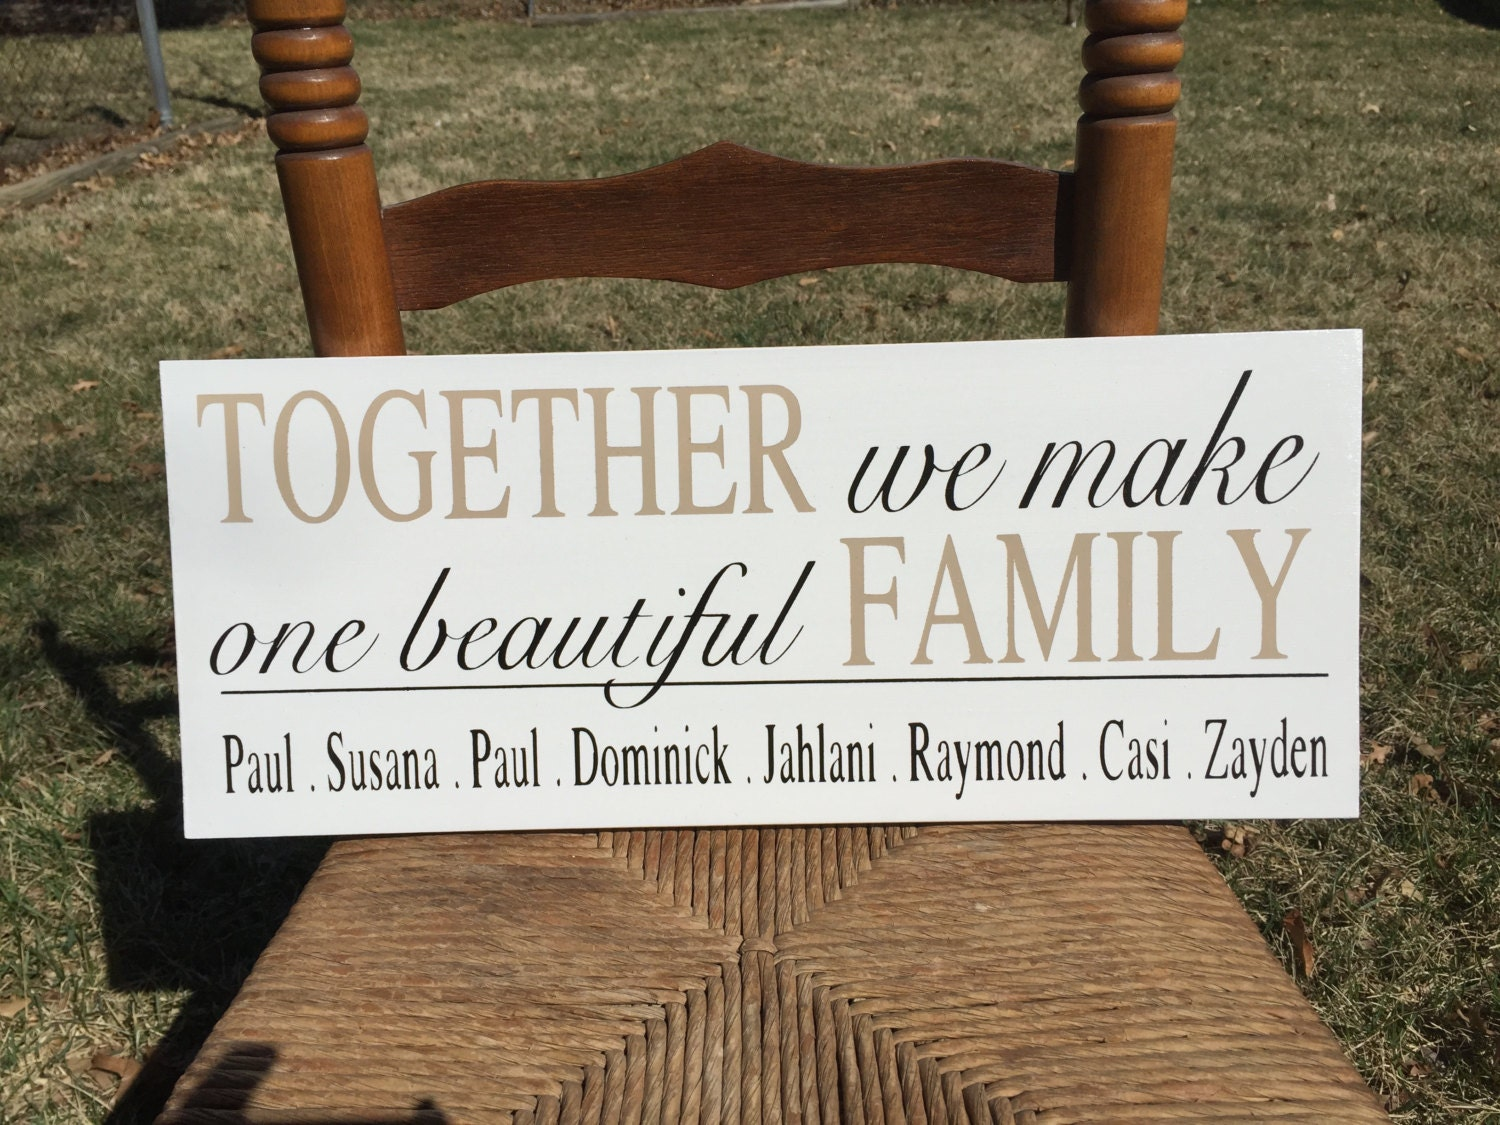 Wedding Gift Ideas Blended Family : Blended Family Sign Etsy - 1500x1125 - jpeg